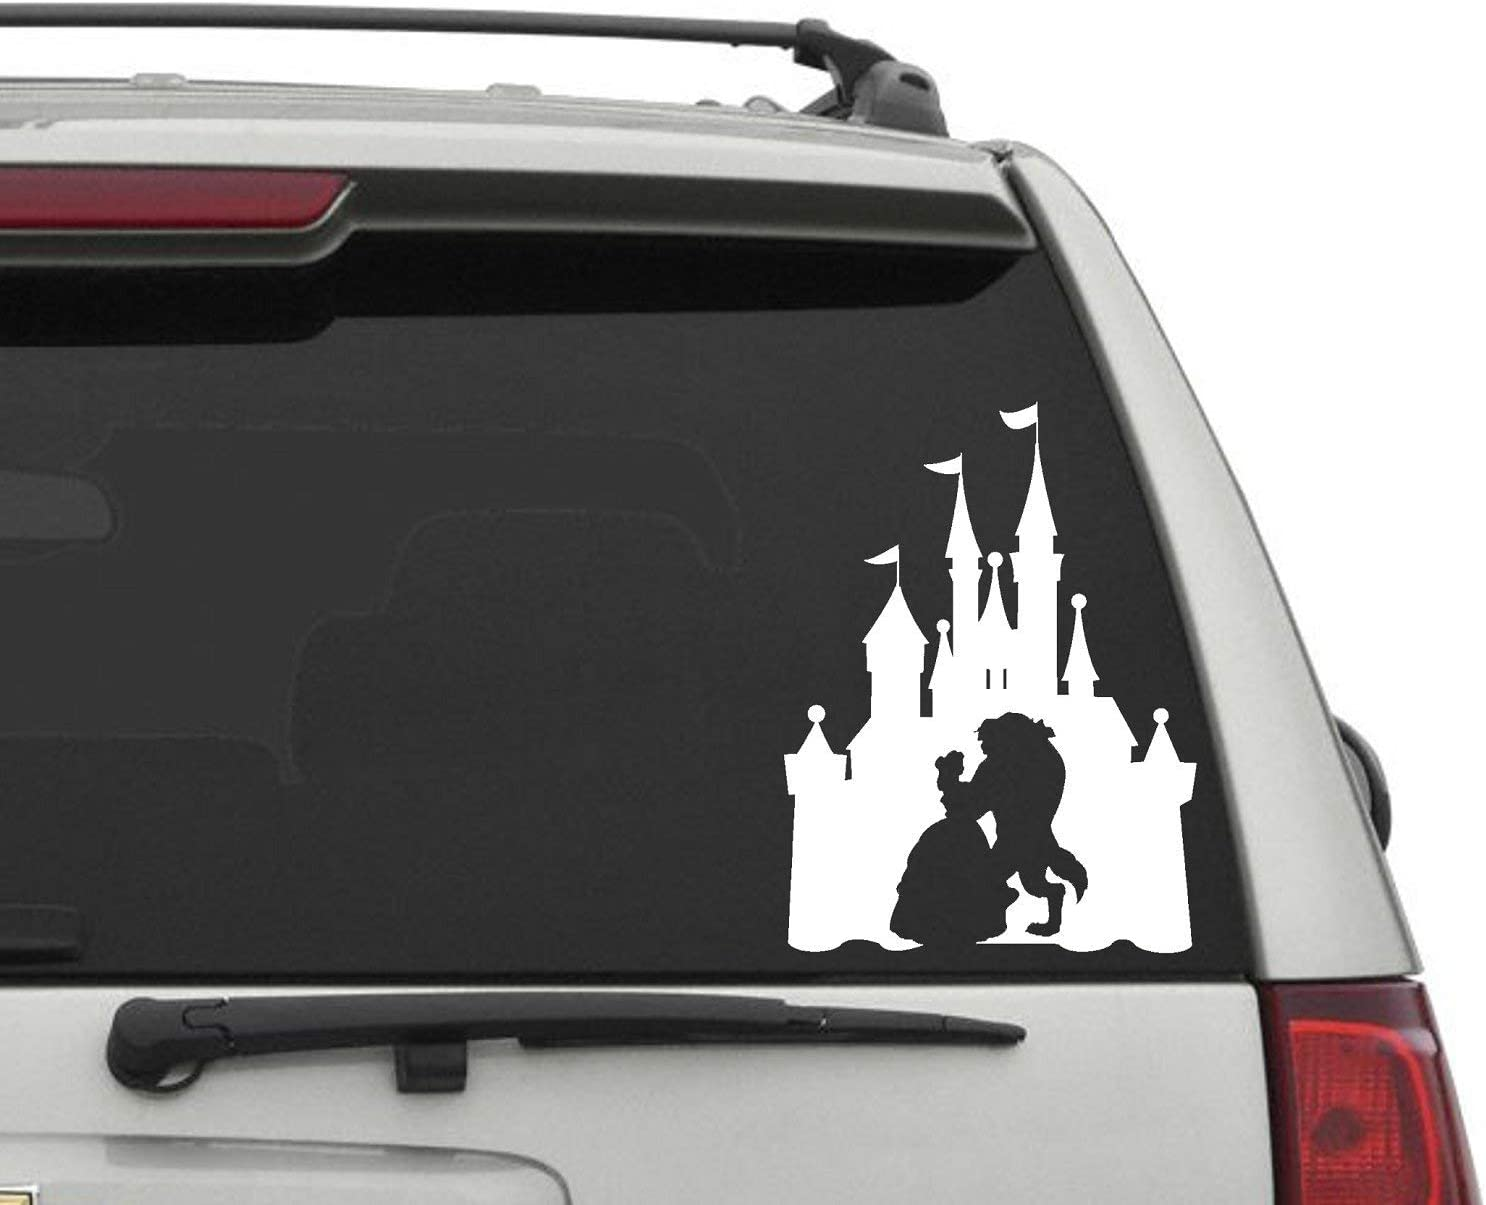 YINGKAI Beauty and The Beast Car Decal Vinyl Wall Decal Sticker Vinyl Lettering Removable Decal for Car Laptop Decoration (White, 10x10 in)